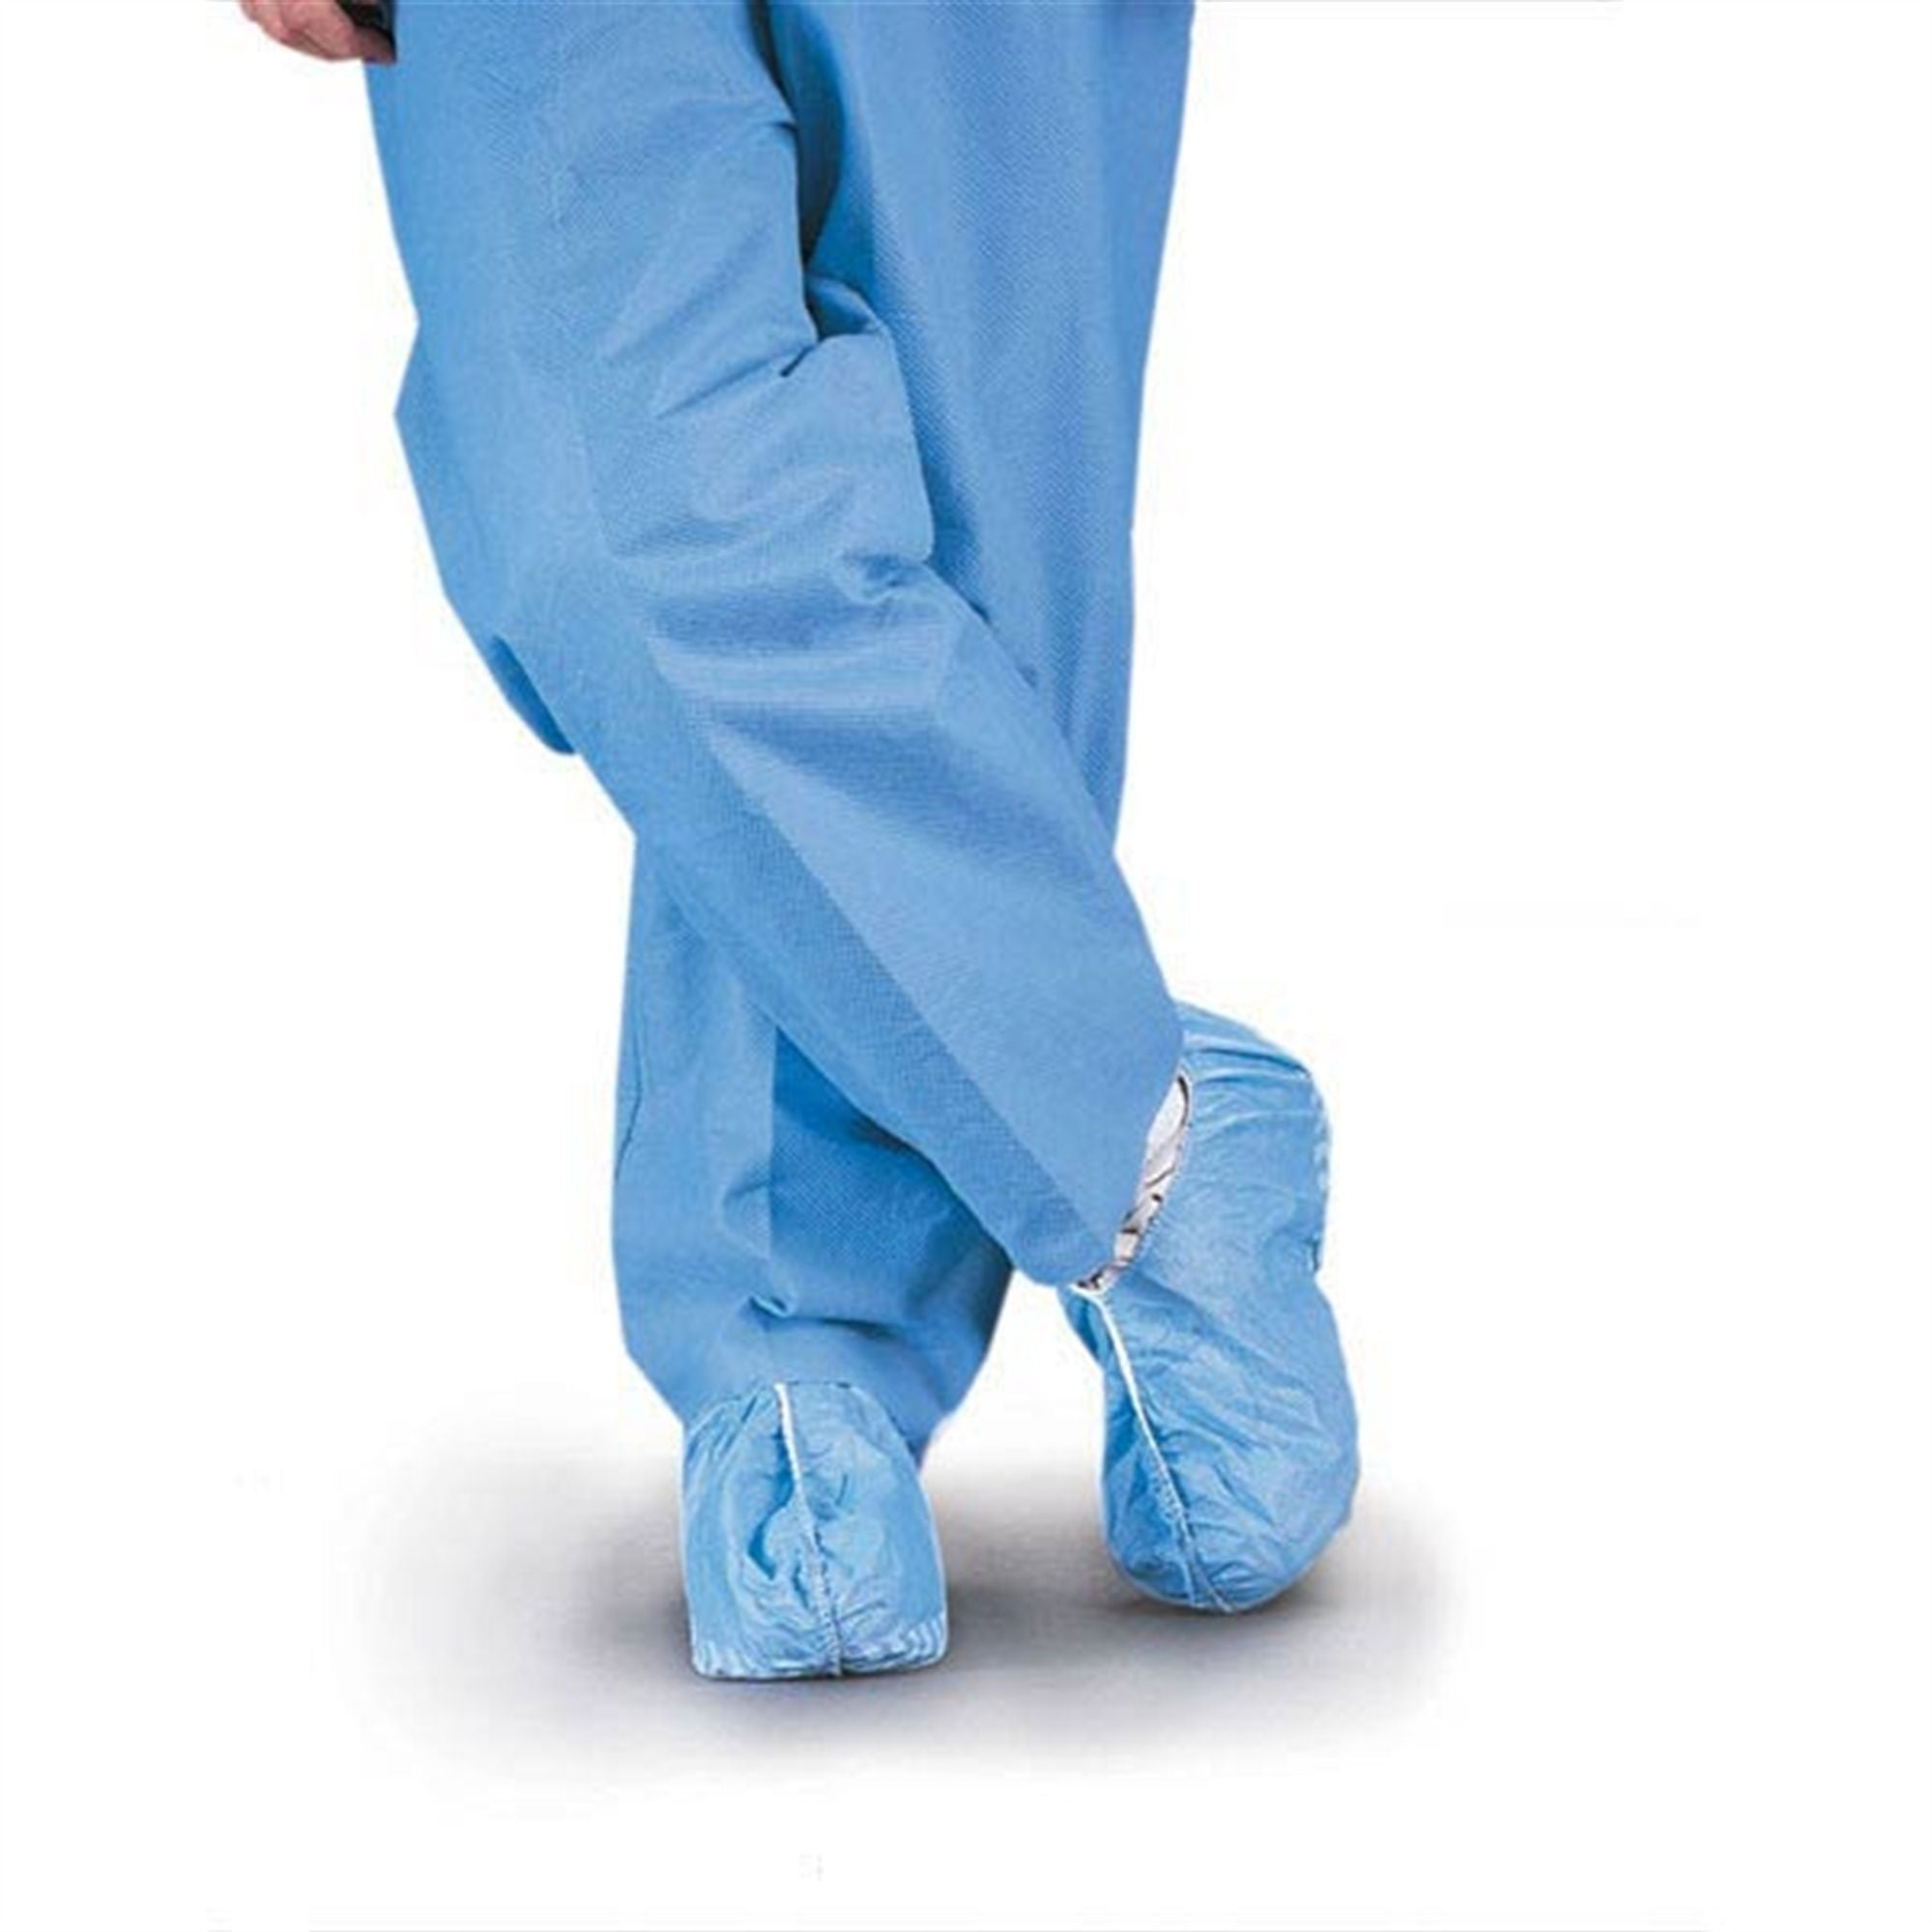 Disposable Protective Shoe/Boot Covers & Medical Booties